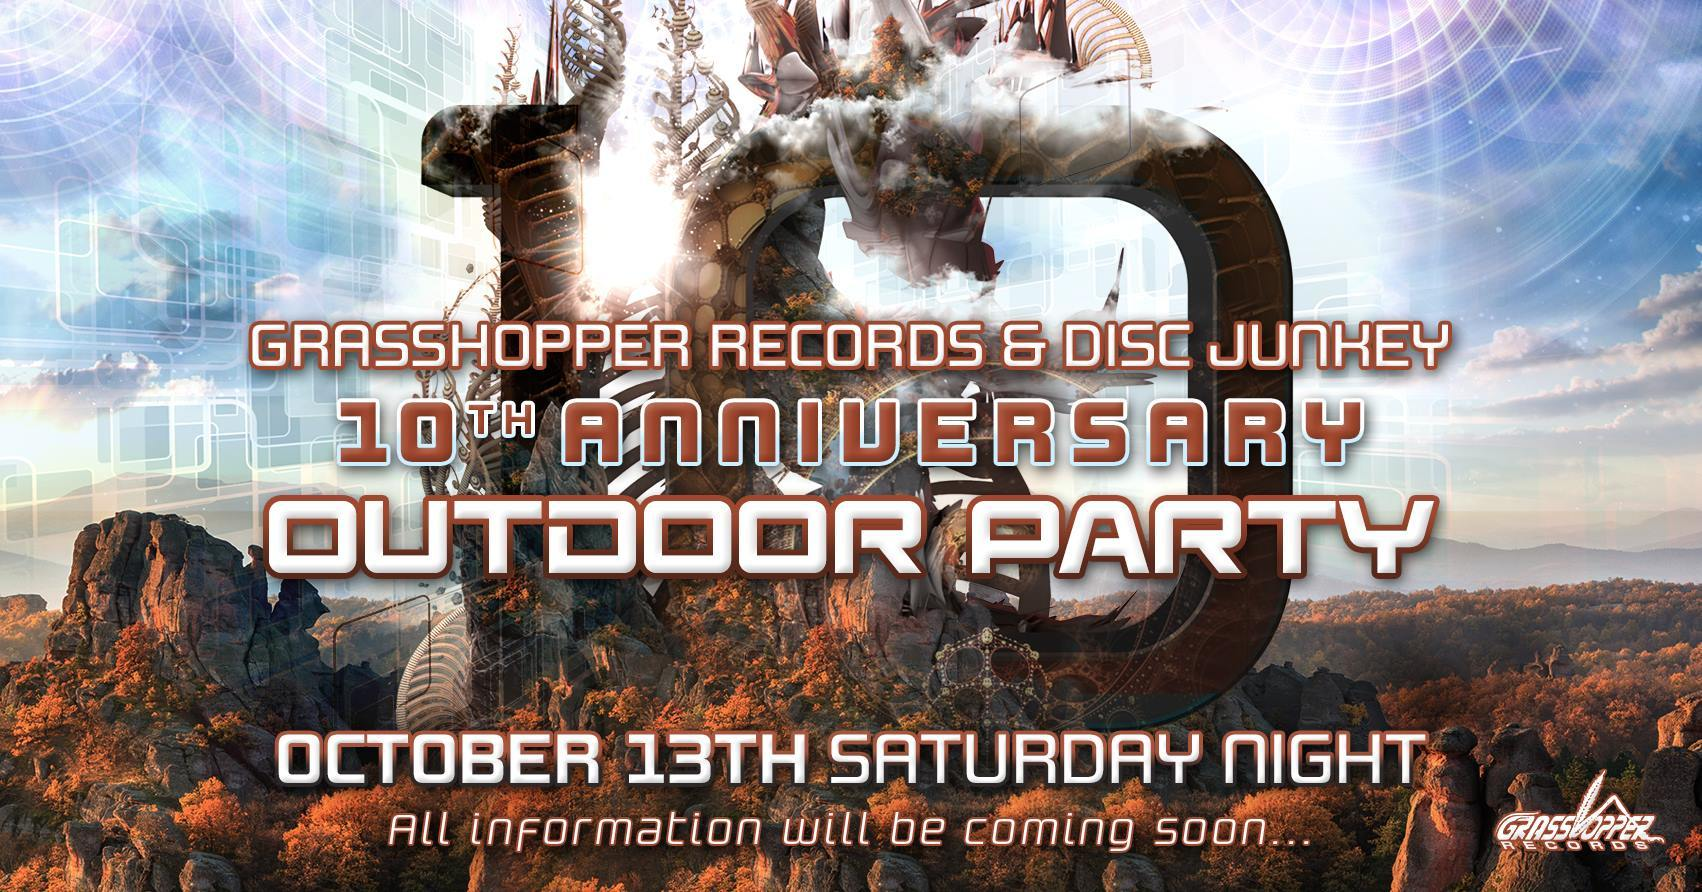 10/13-14 Grasshopper Records & Disc Junkey 10th Anniversary Outdoor party@おおばキャンプ村_c0311698_22224985.jpg